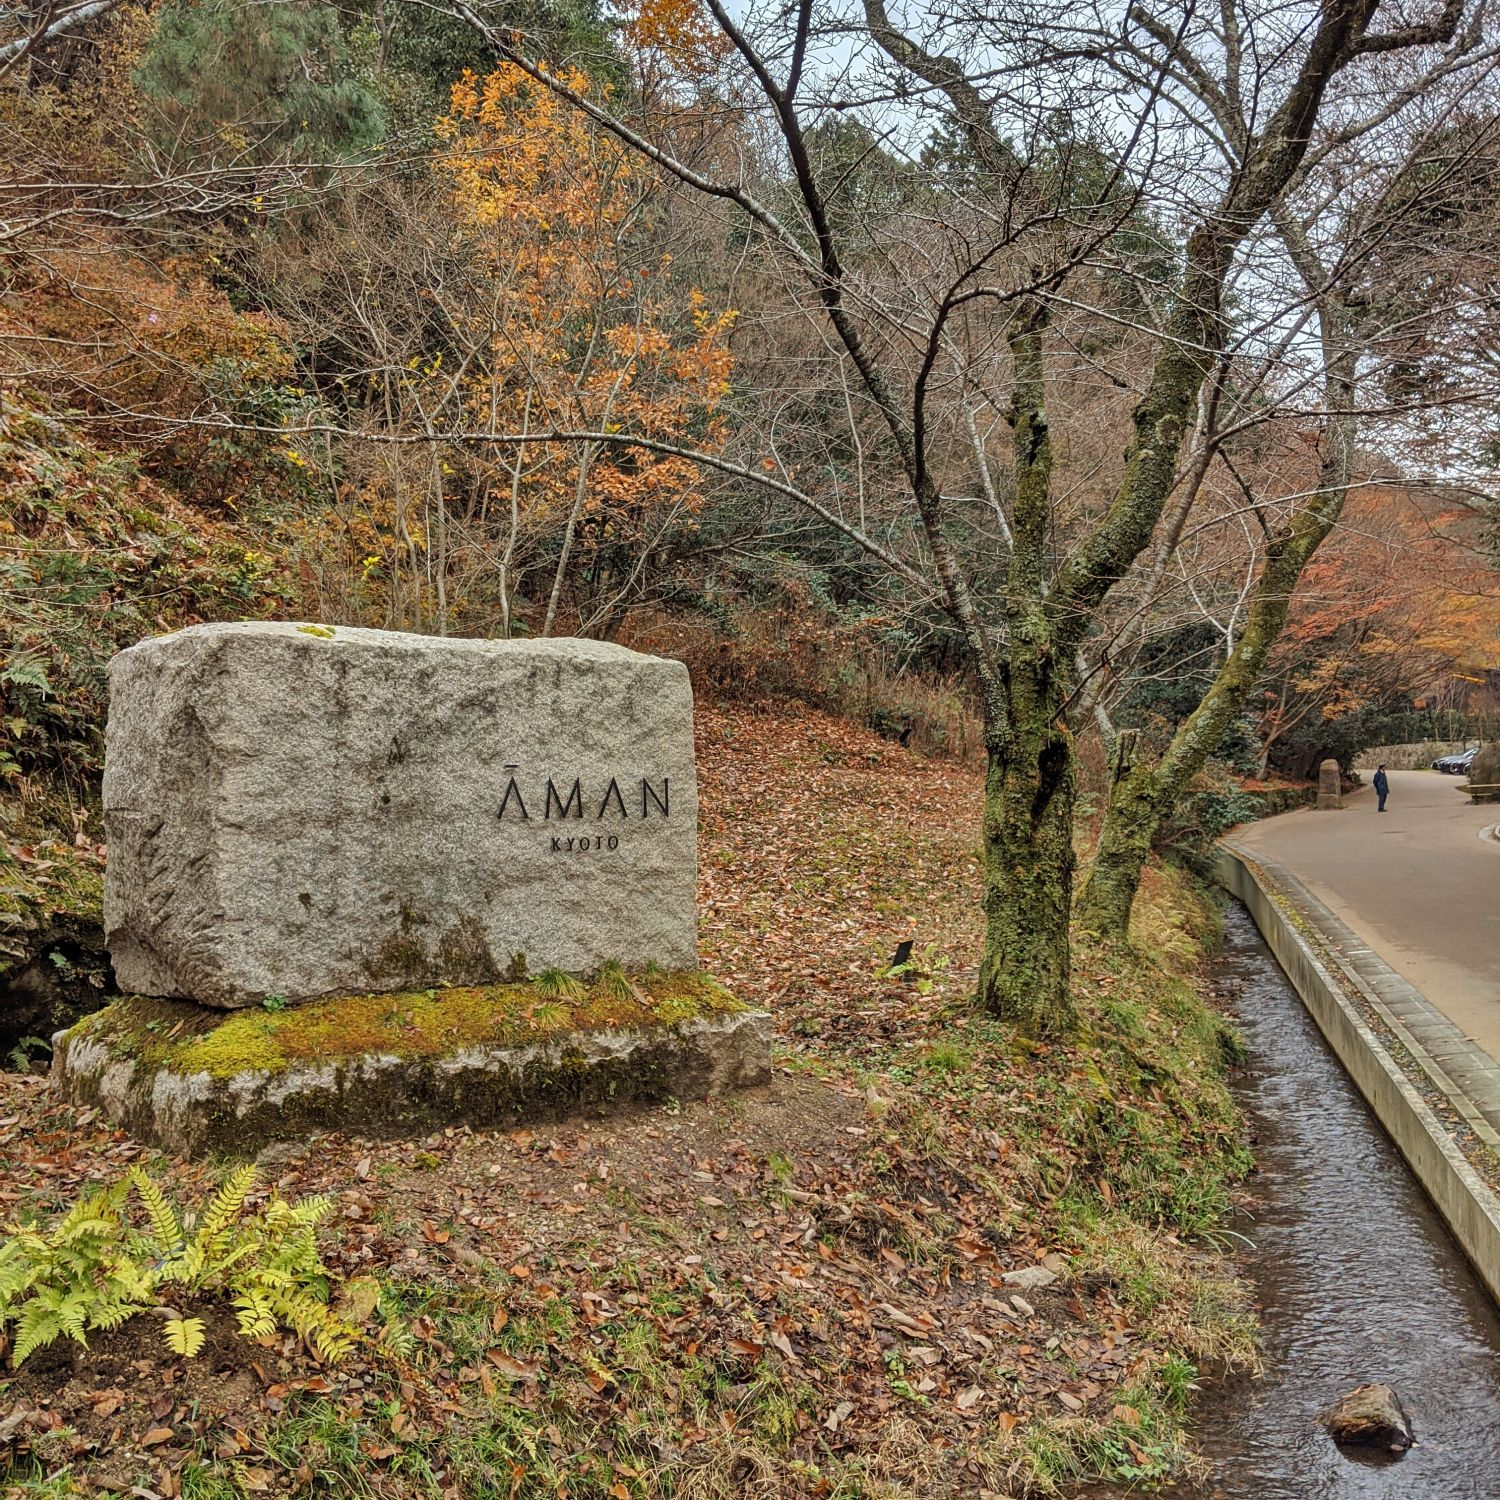 aman kyoto entrance